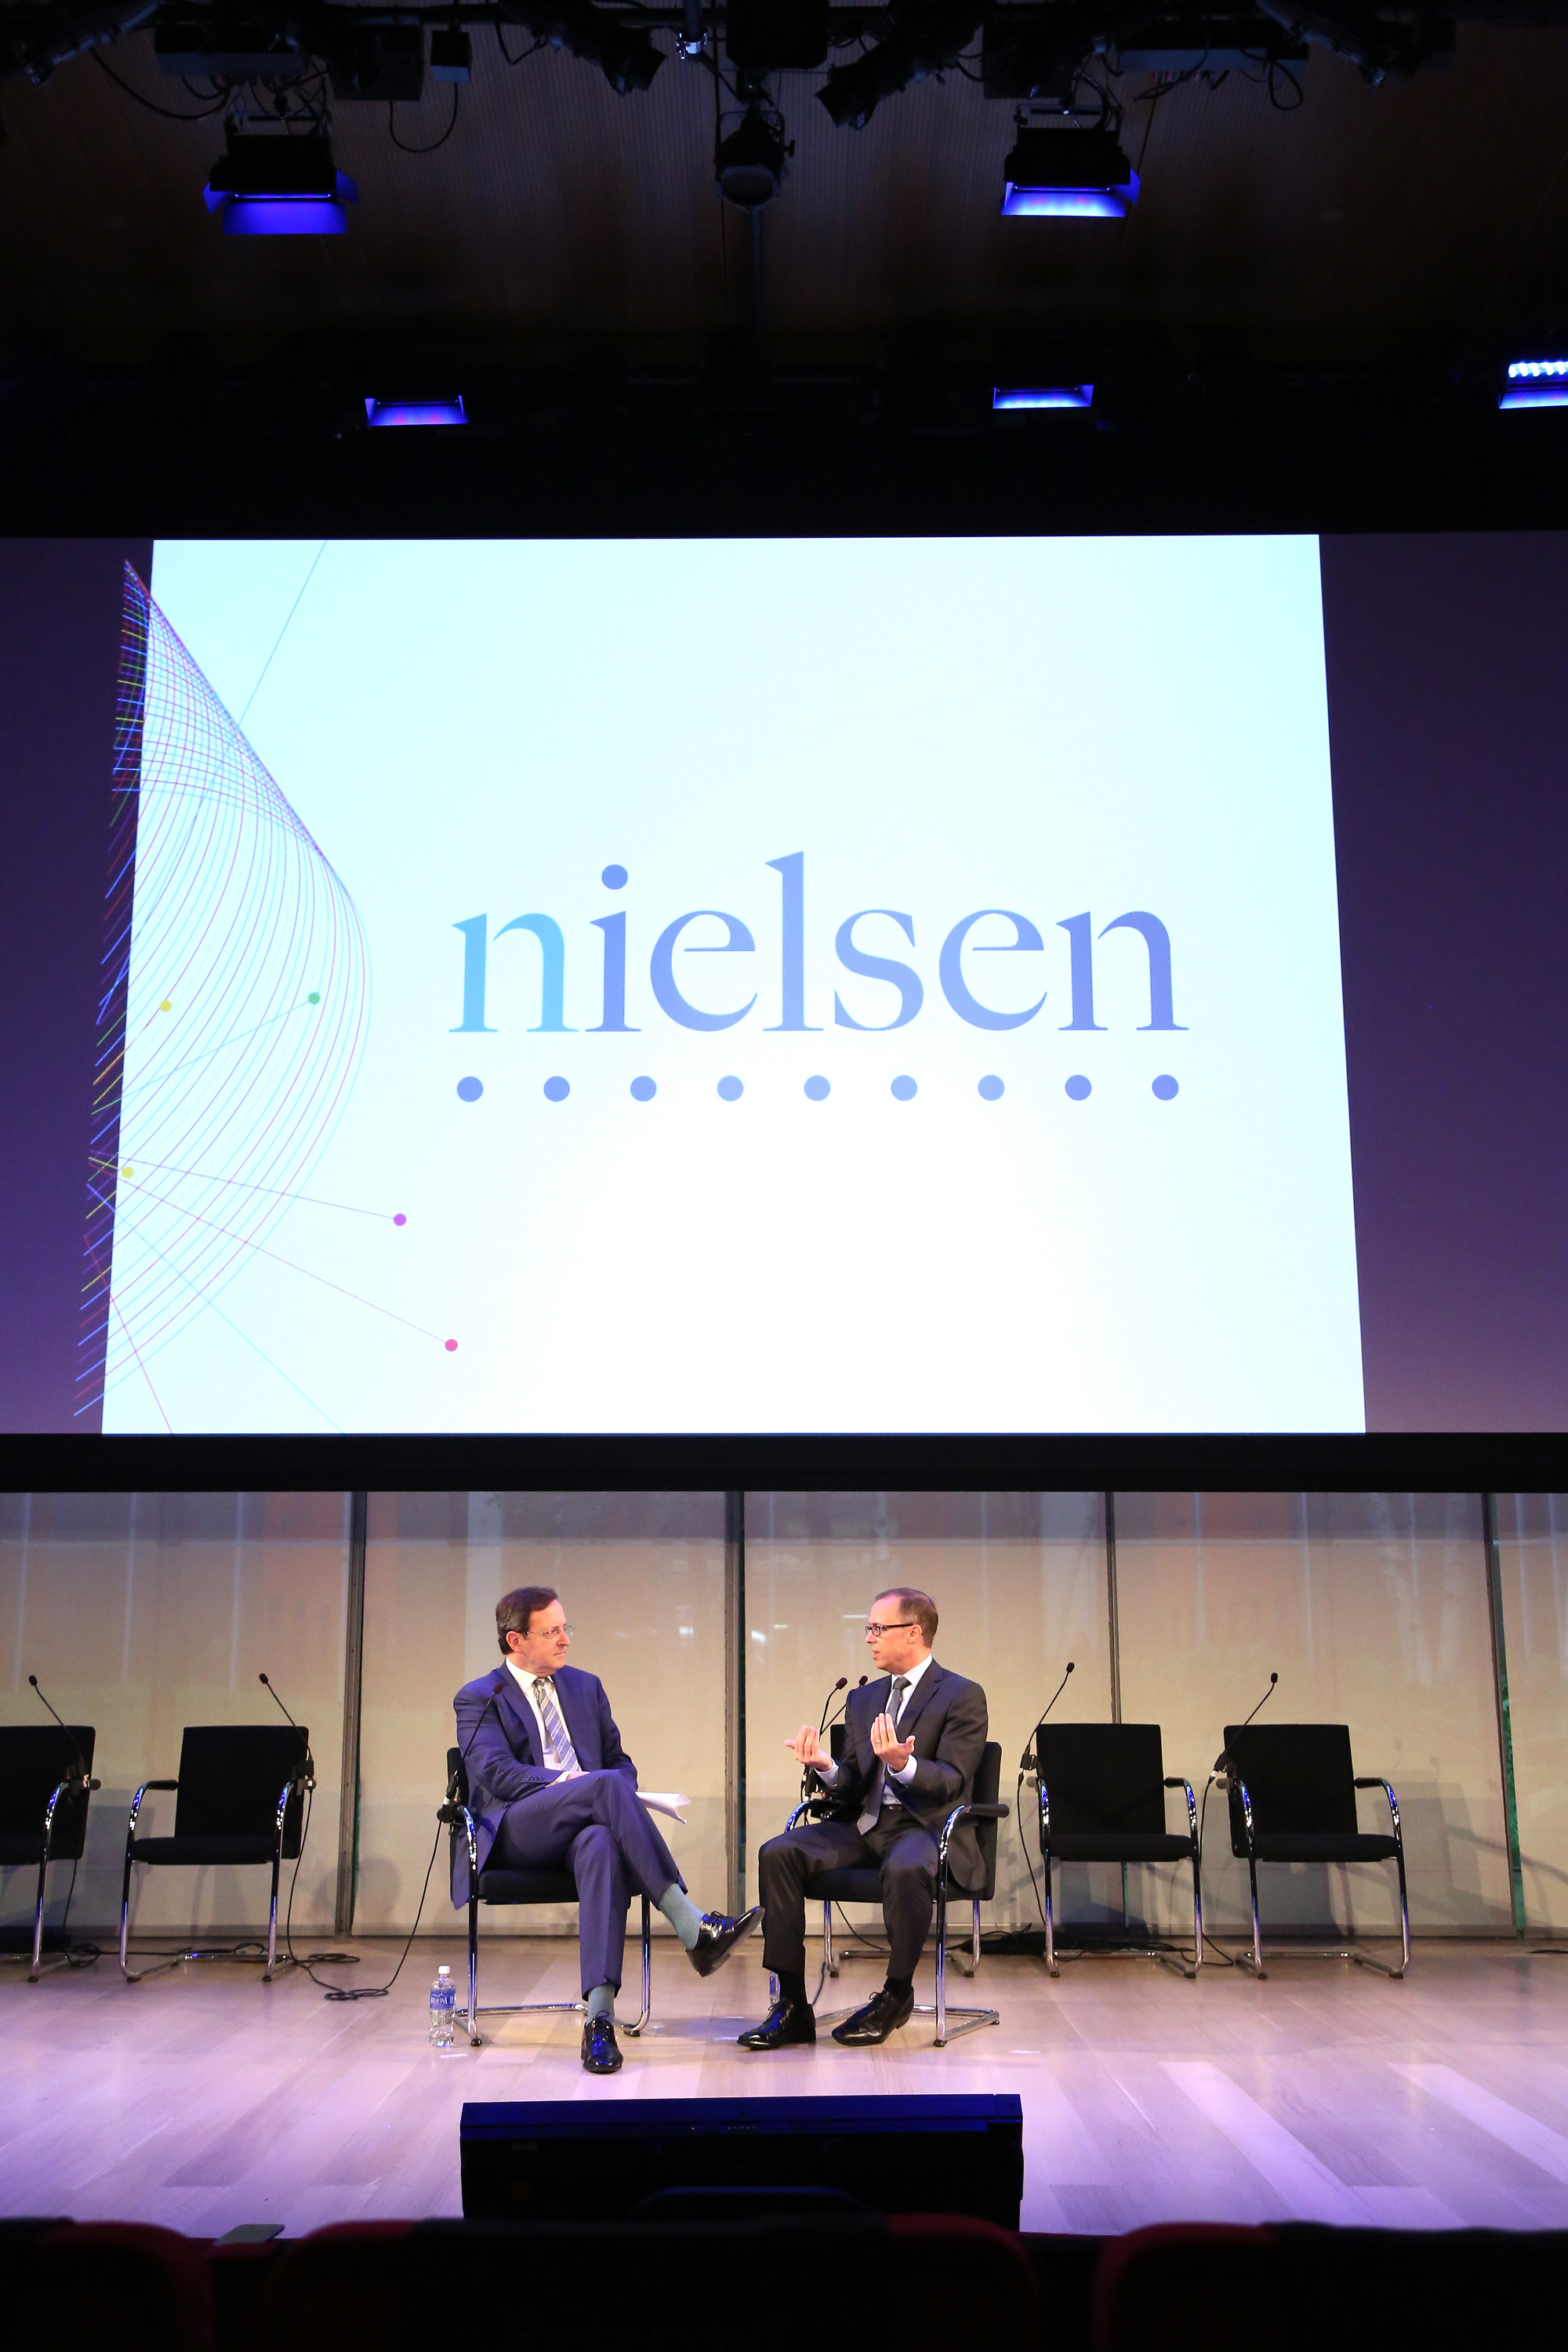 Senior Correspondent at CBS News, Anthony Mason (L) and CEO at Nielsen, Mitch Barns speak onstage at The Future of Measurement panel September 30, 2014 in New York City.